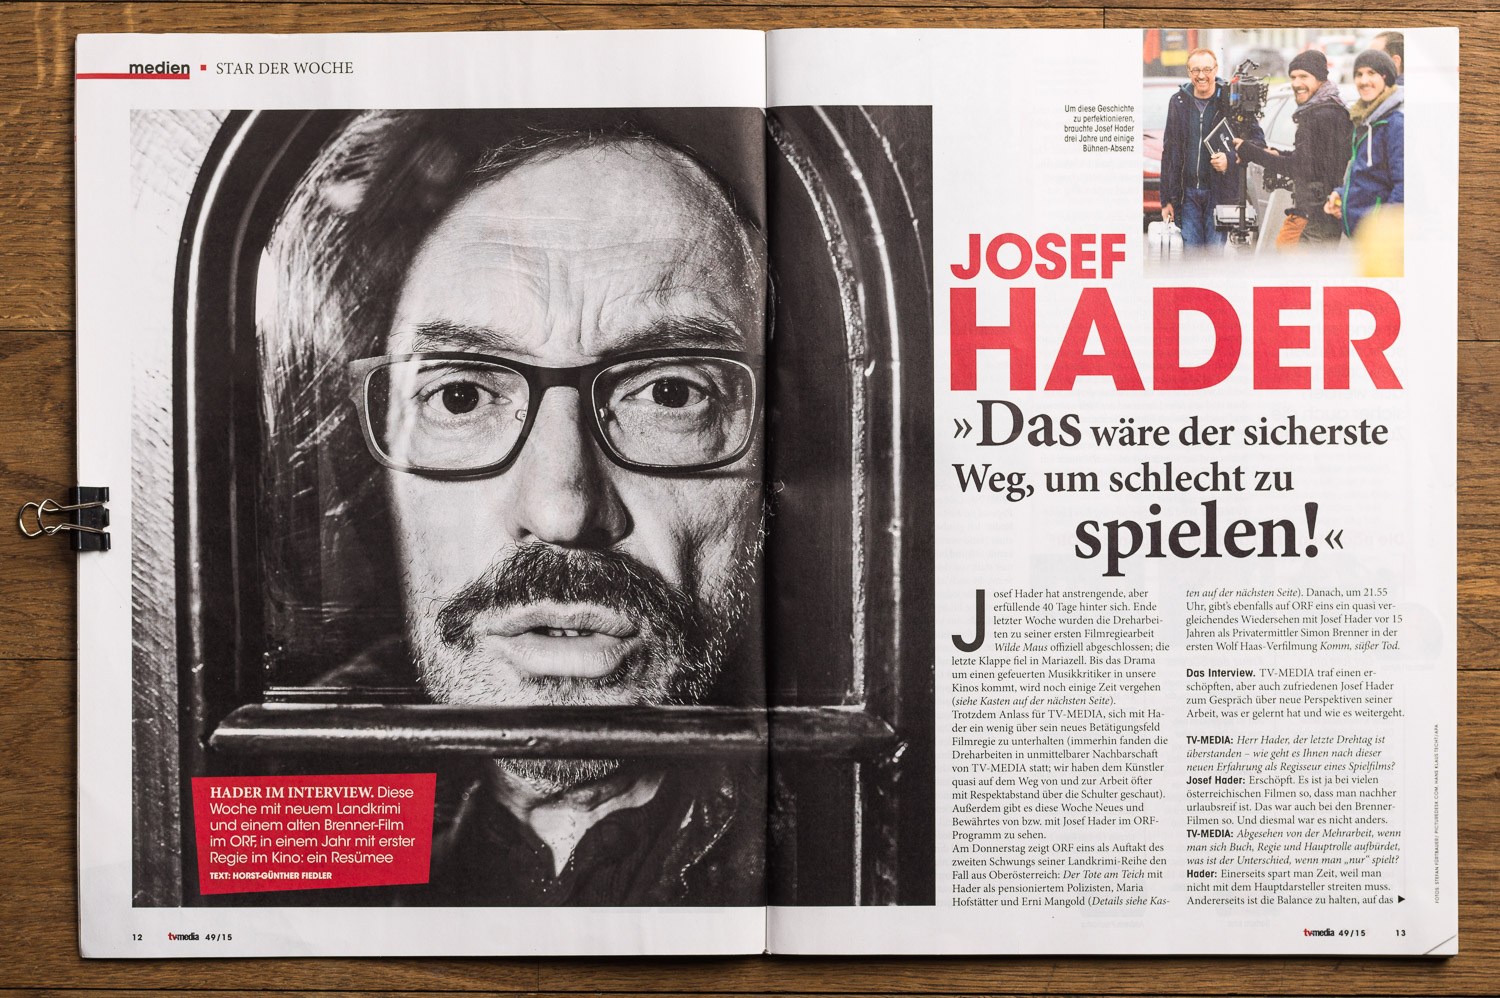 Josef Hader in TV Media